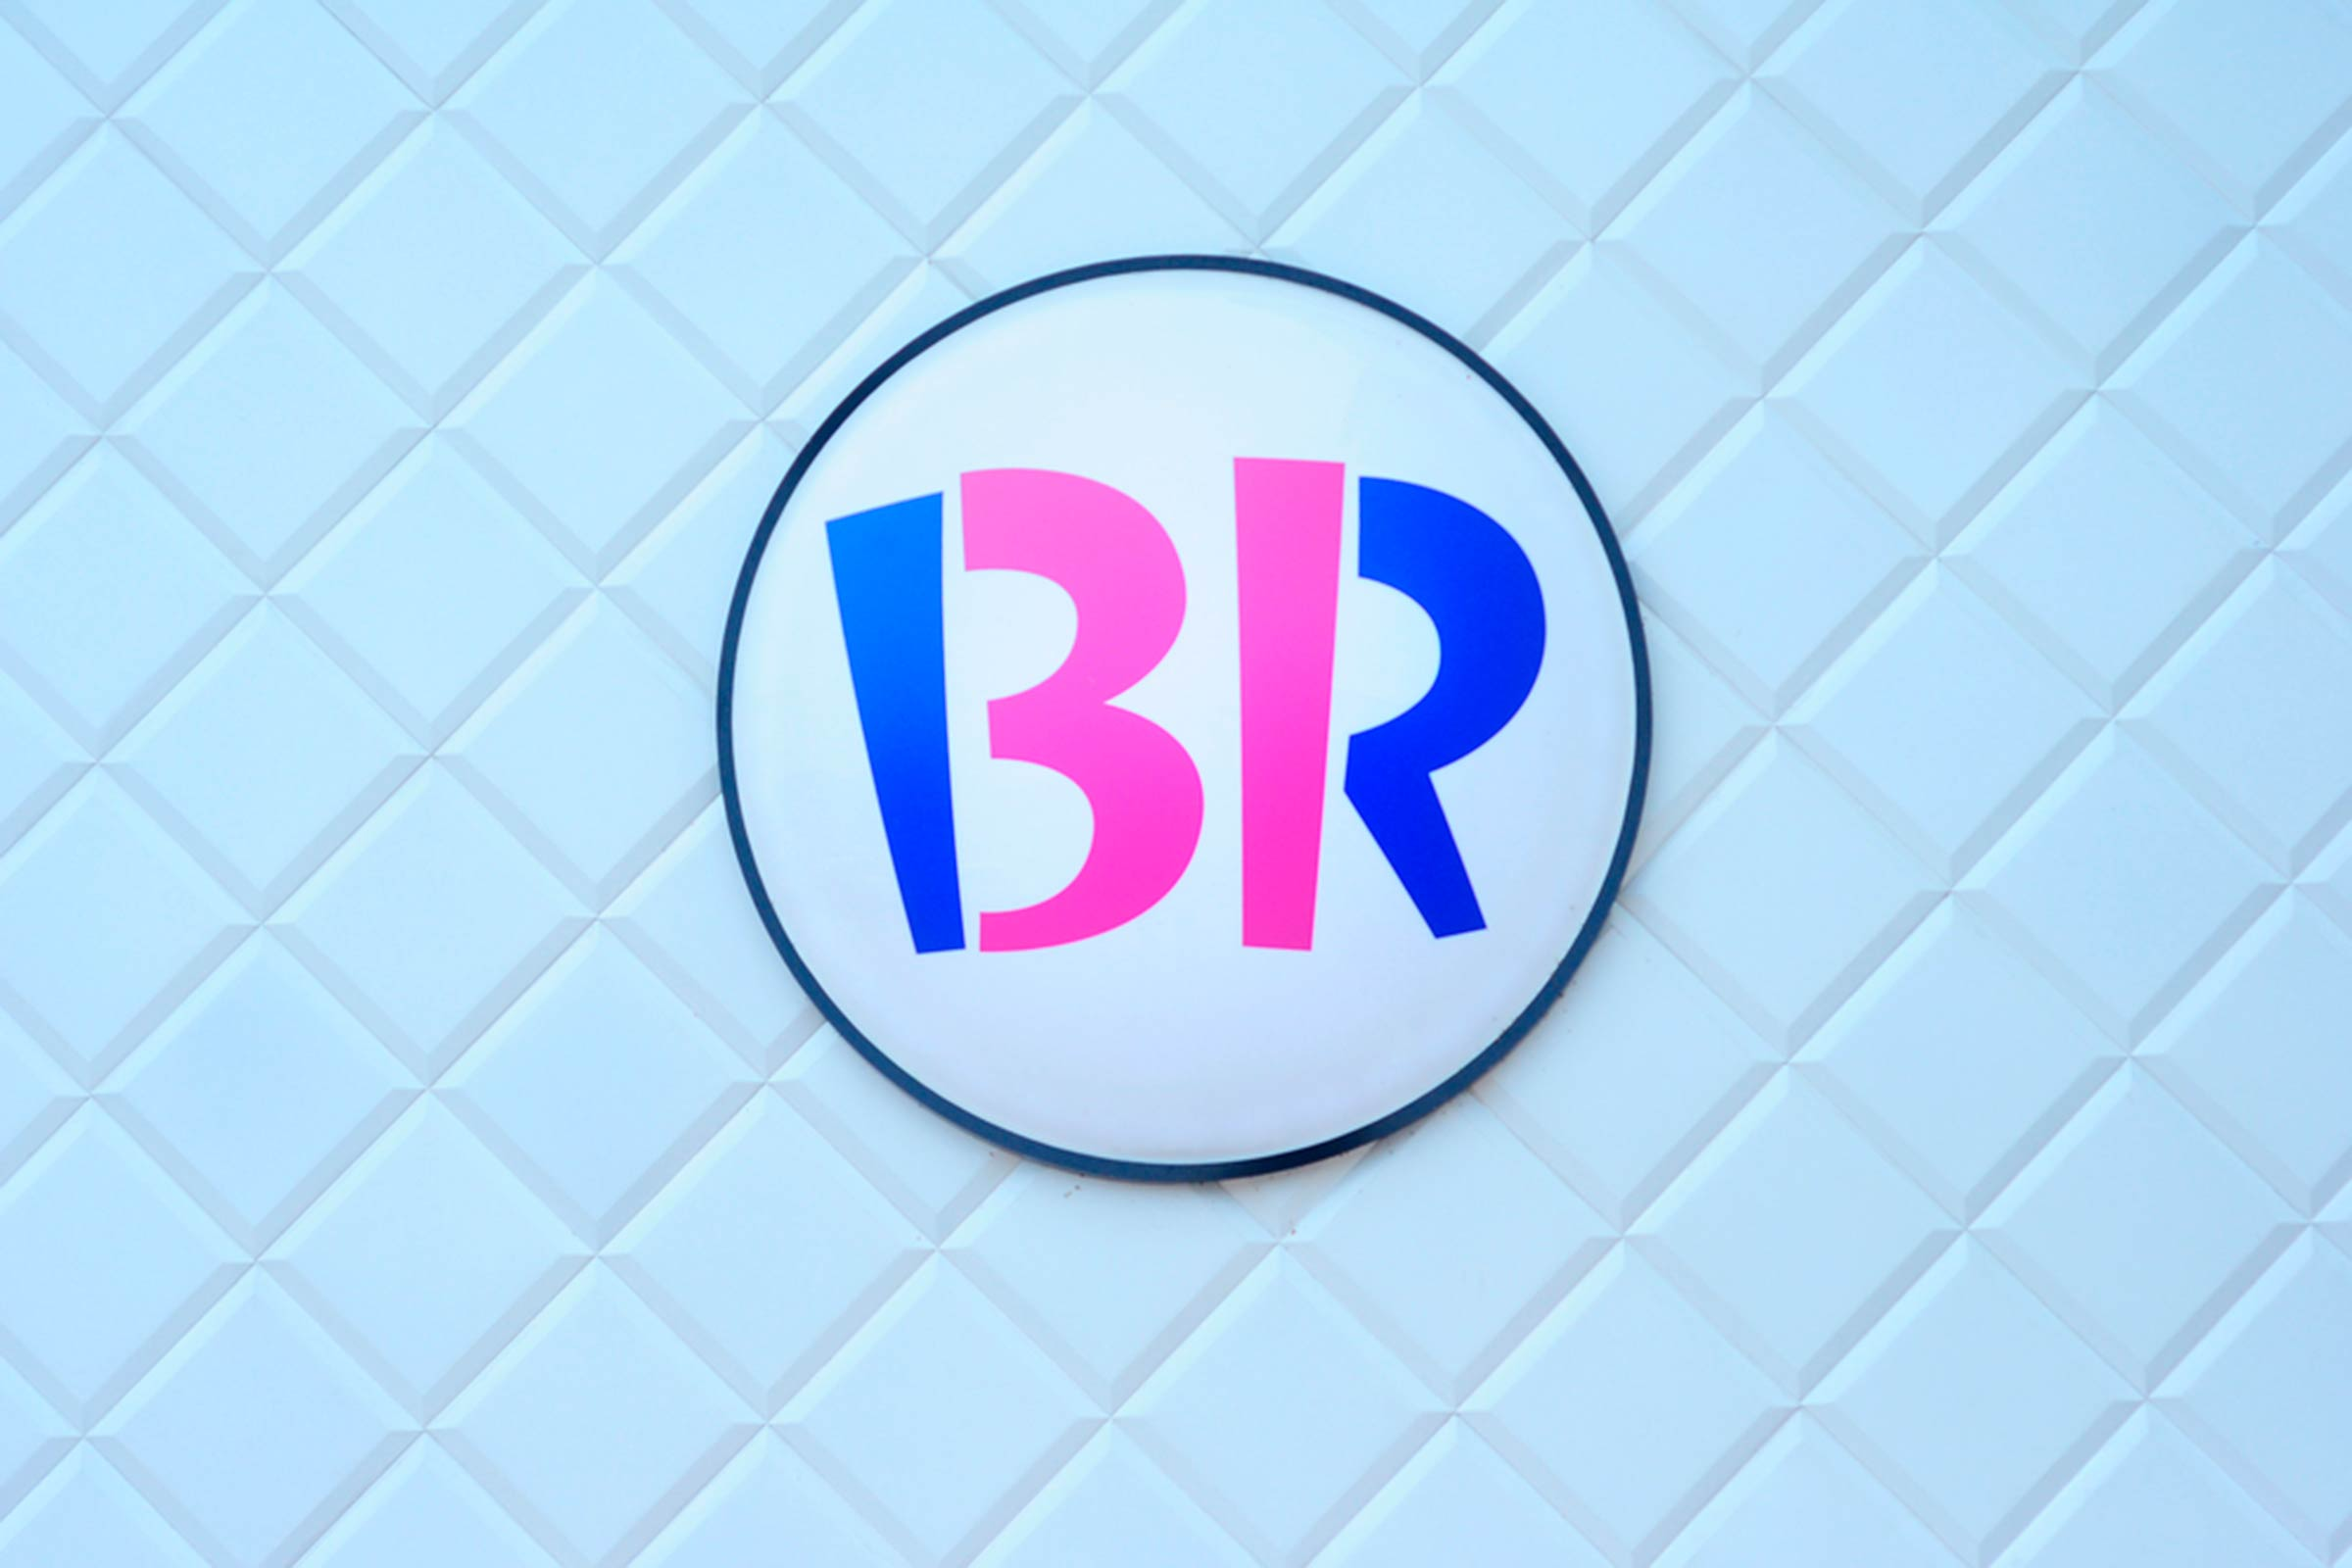 Baskin-Robbins Logo - There's a Hidden Symbol in the Baskin Robbins Logo | Reader's Digest